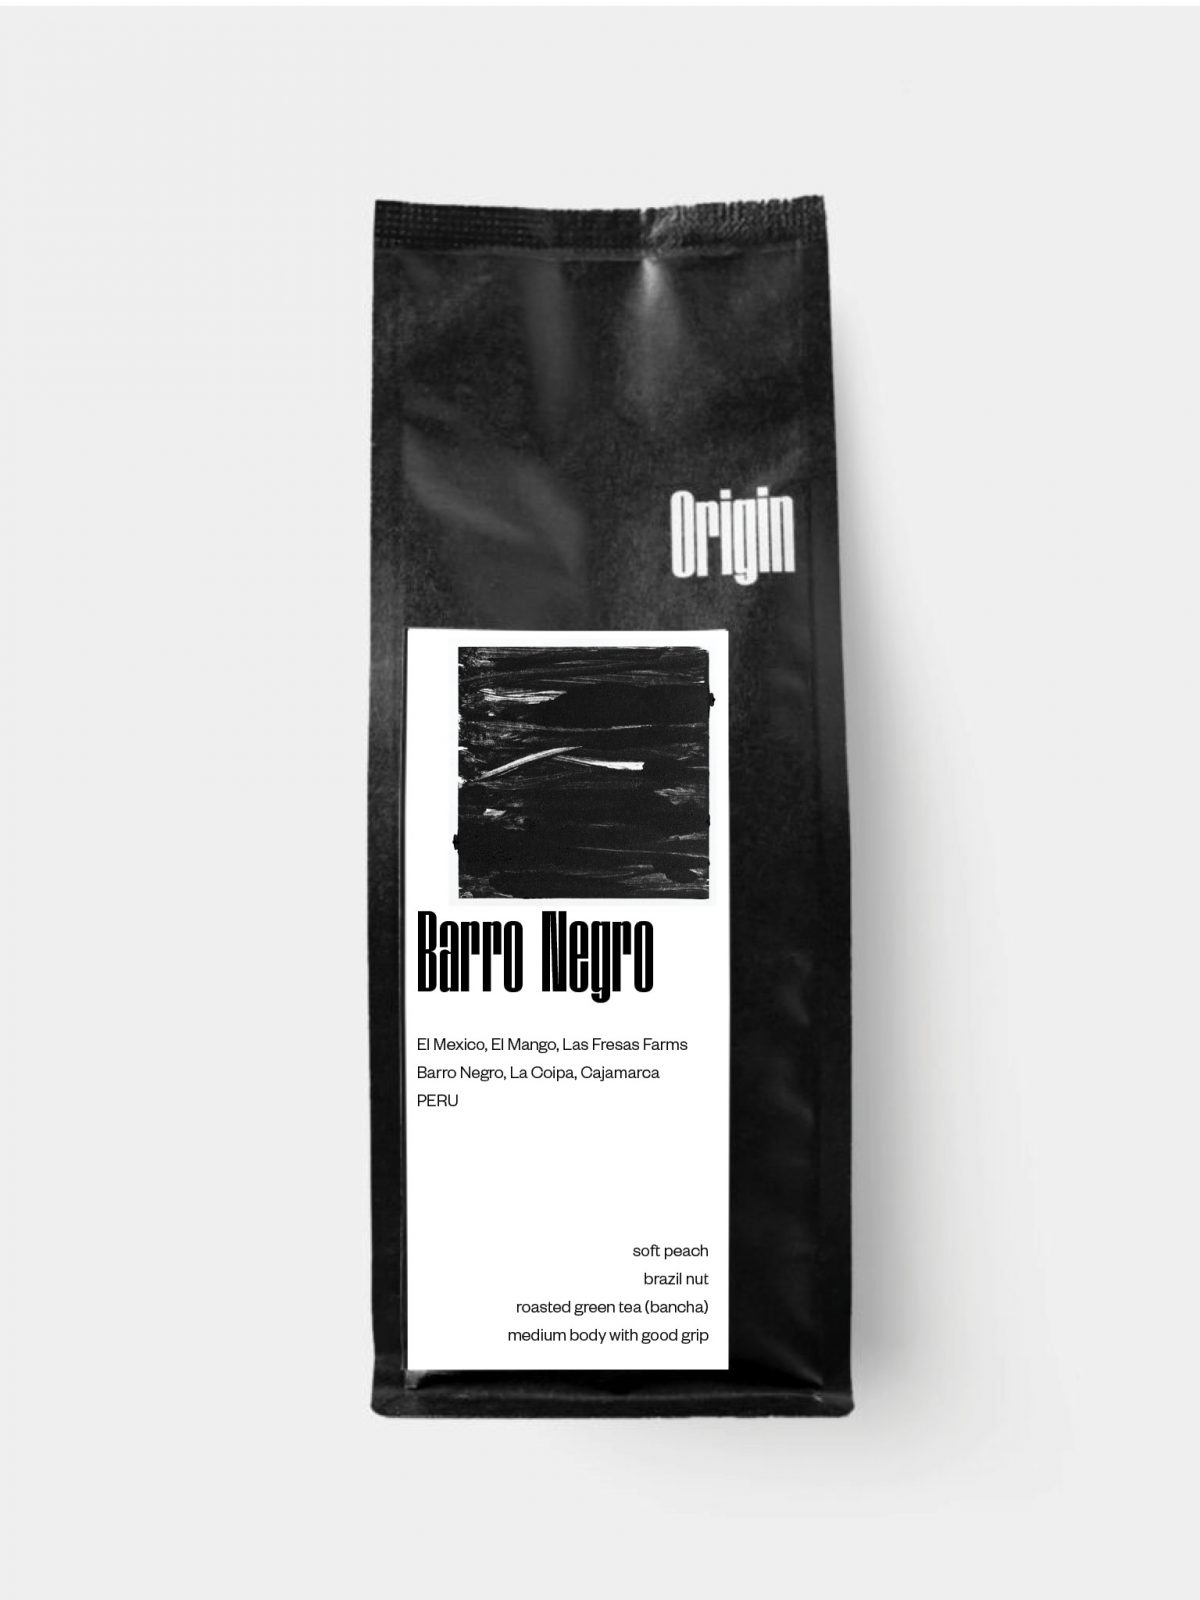 Peru Barro Negro - on the 250g bag